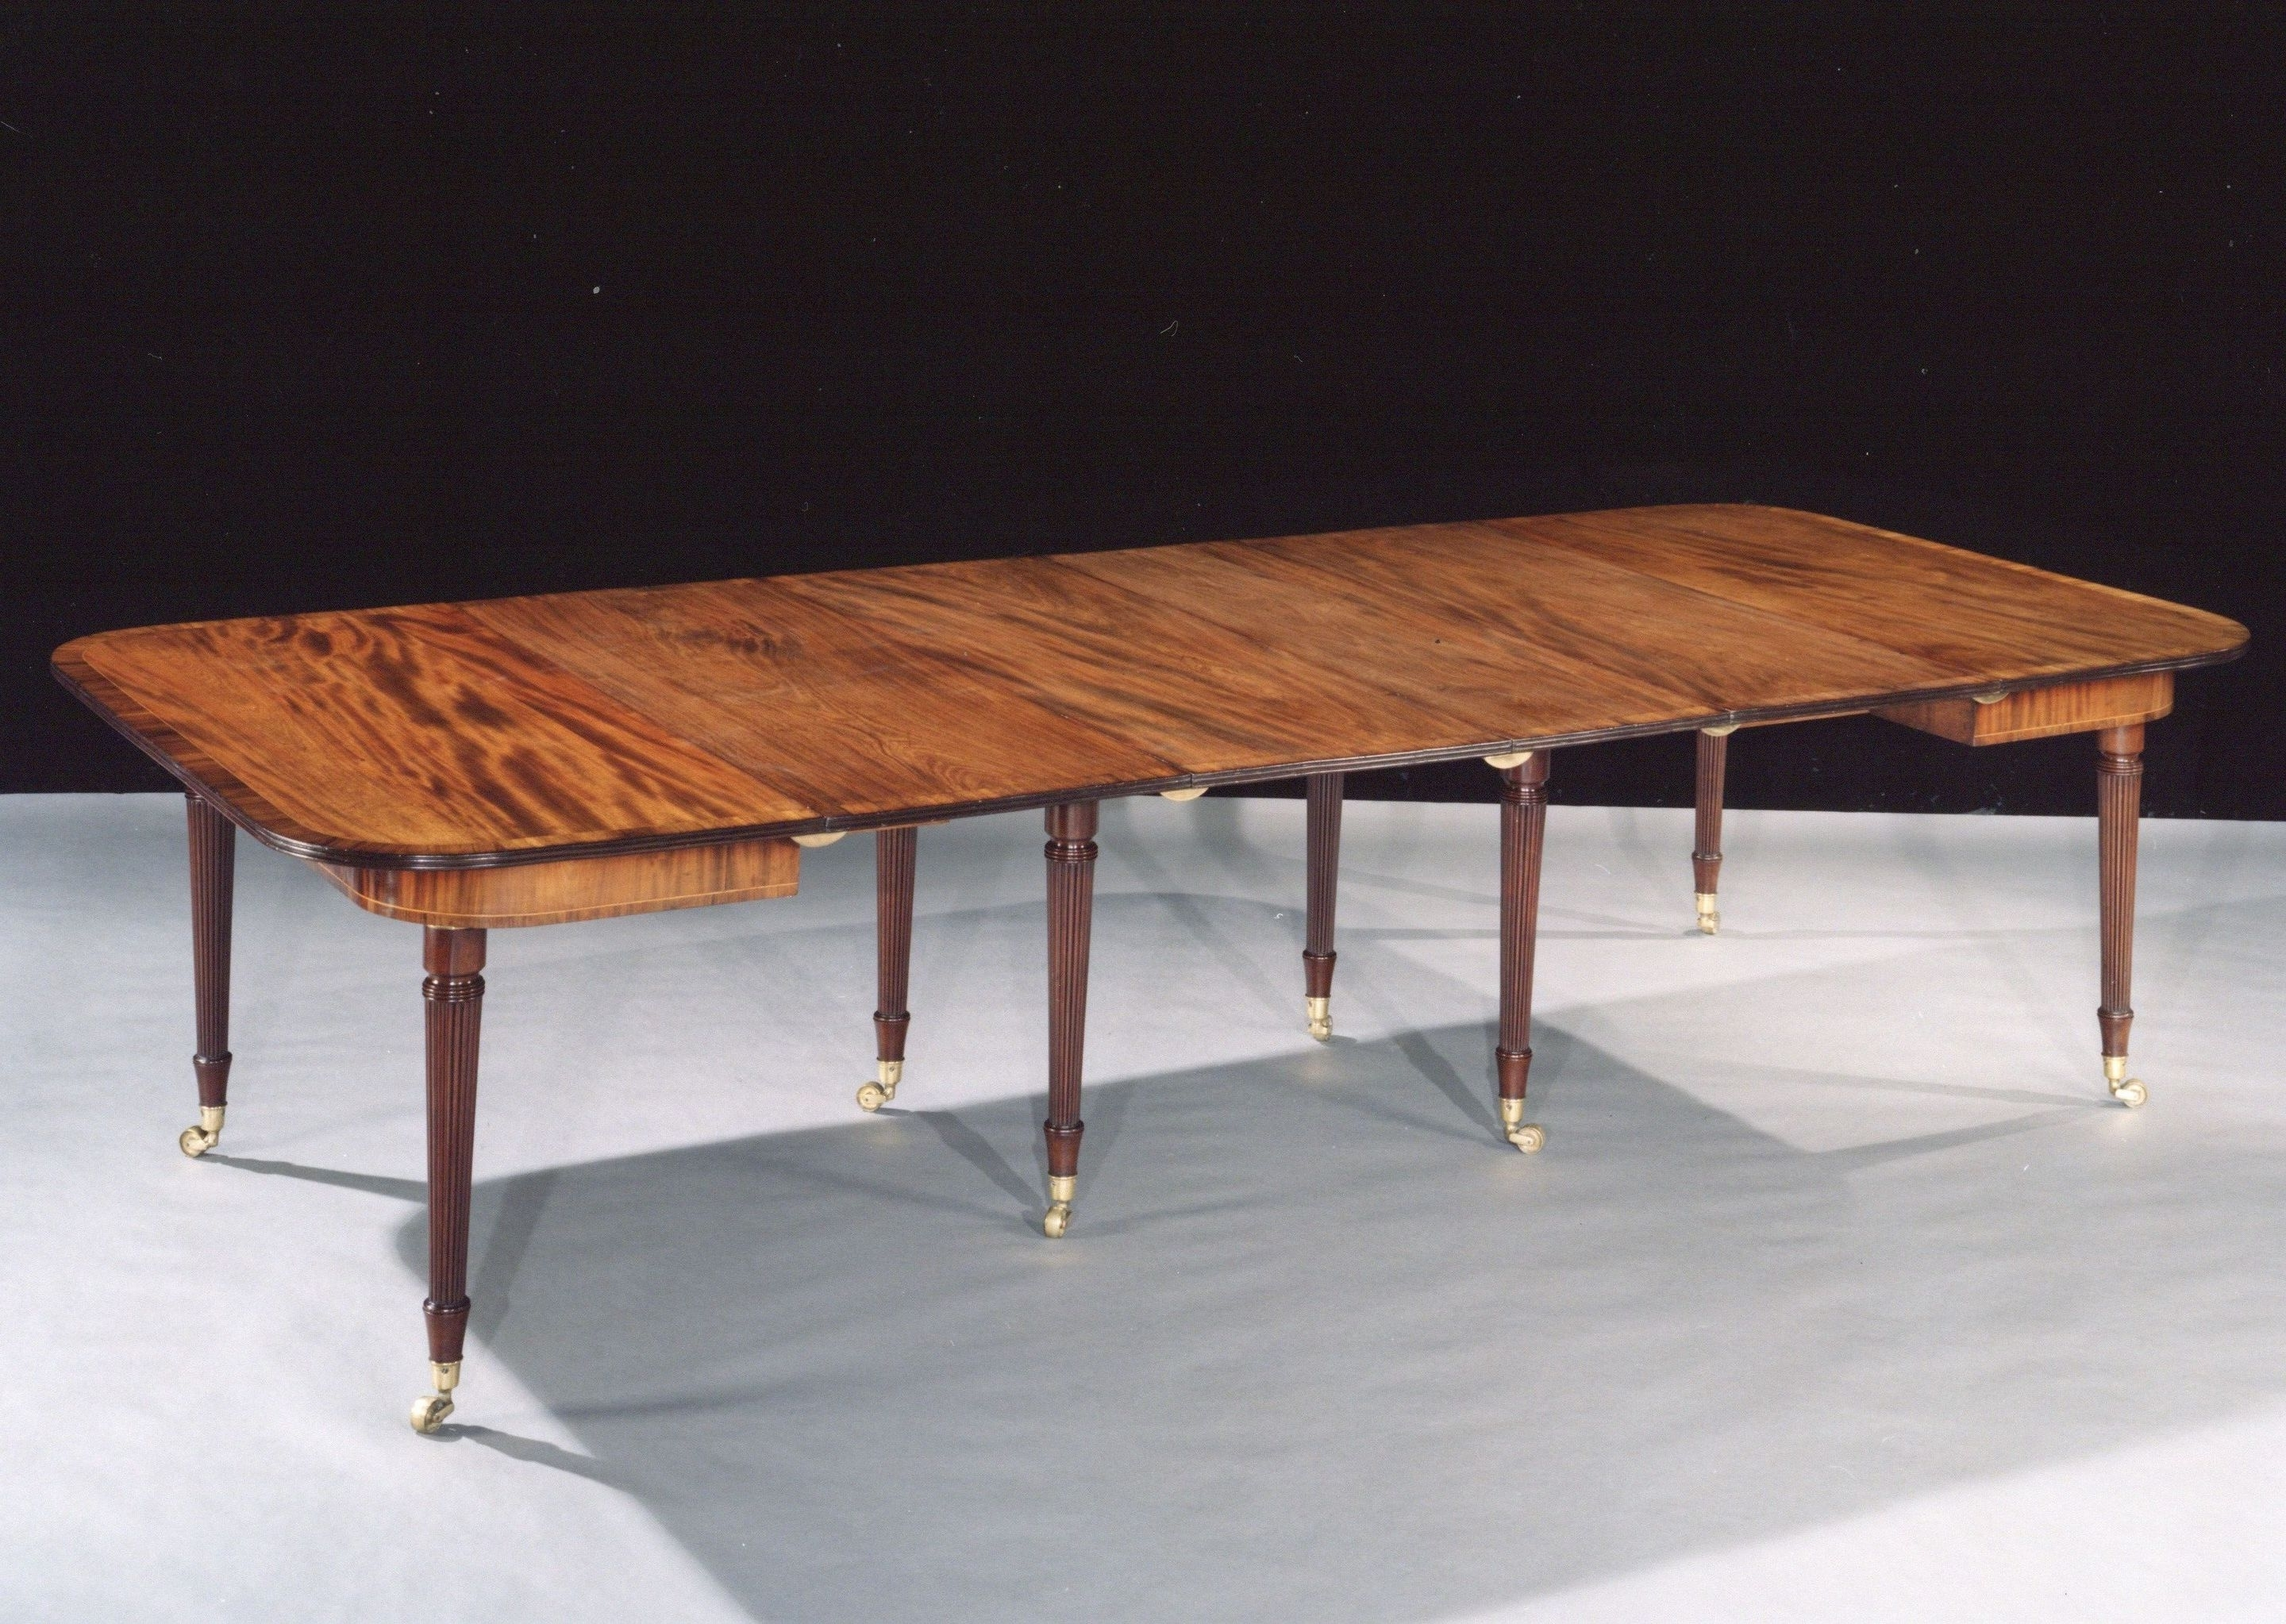 A George Iii Mahogany 'imperial Dining Table' Attributed To Gillows Within Most Recent Imperial Dining Tables (View 2 of 25)